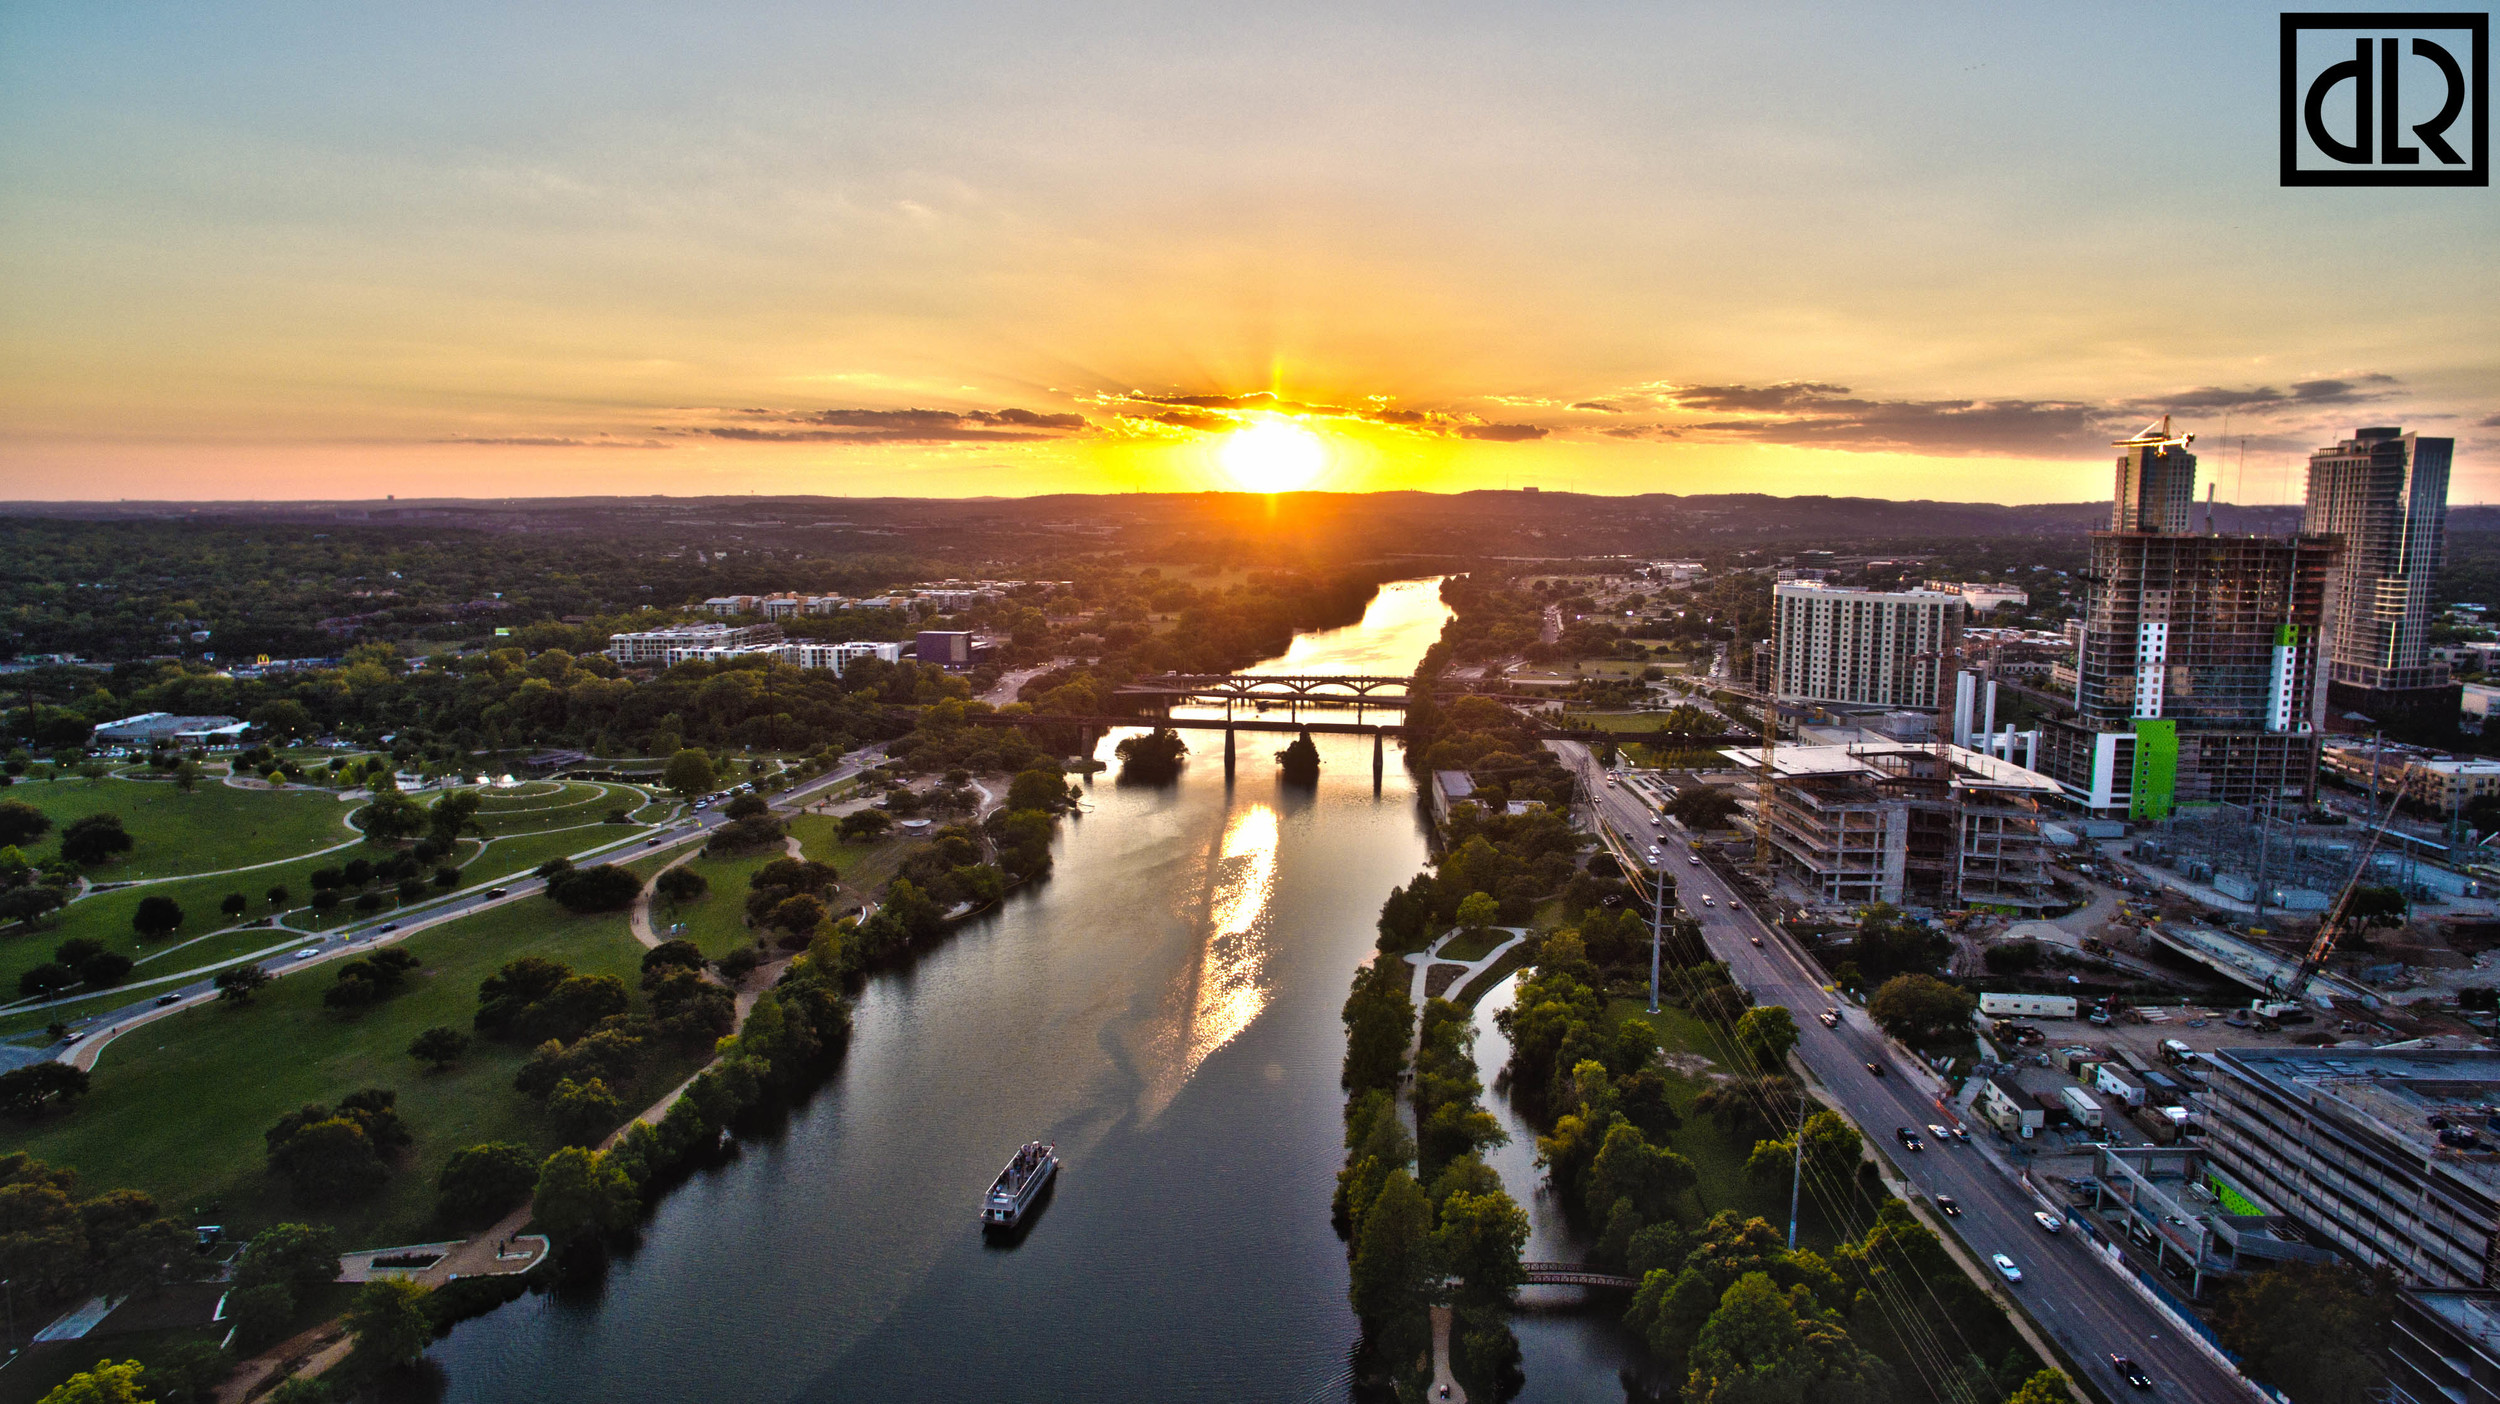 Auditorium_Shores_Sunset1.jpg